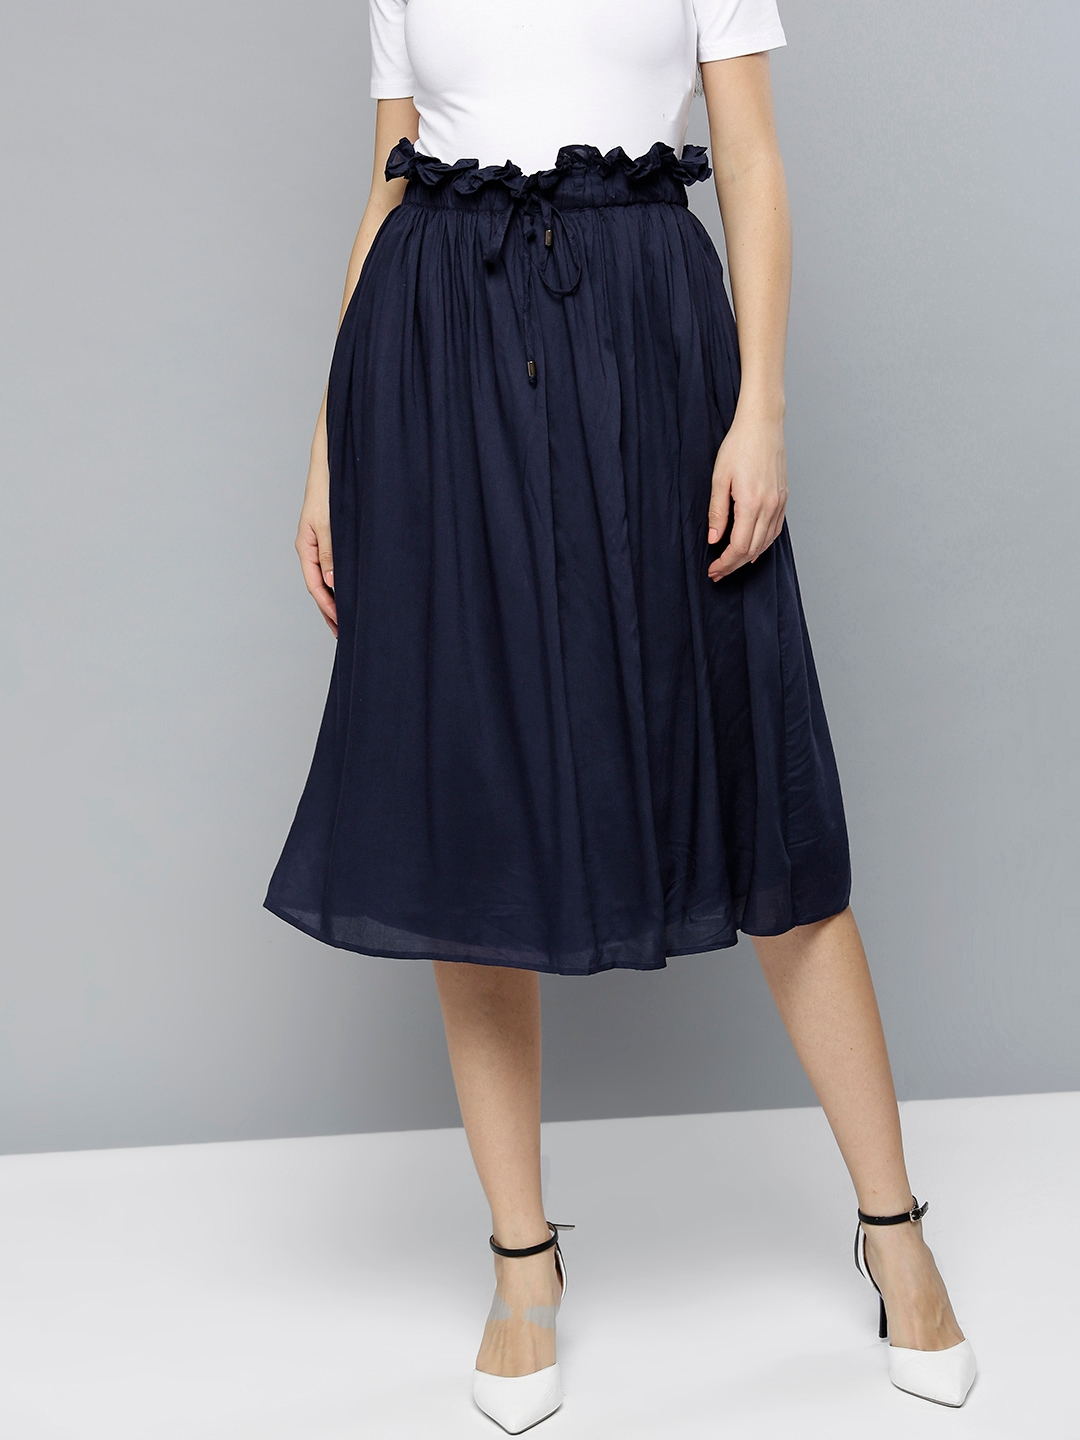 70e0494870 Buy RARE Women Navy Blue Midi A Line Skirt - Skirts for Women ...